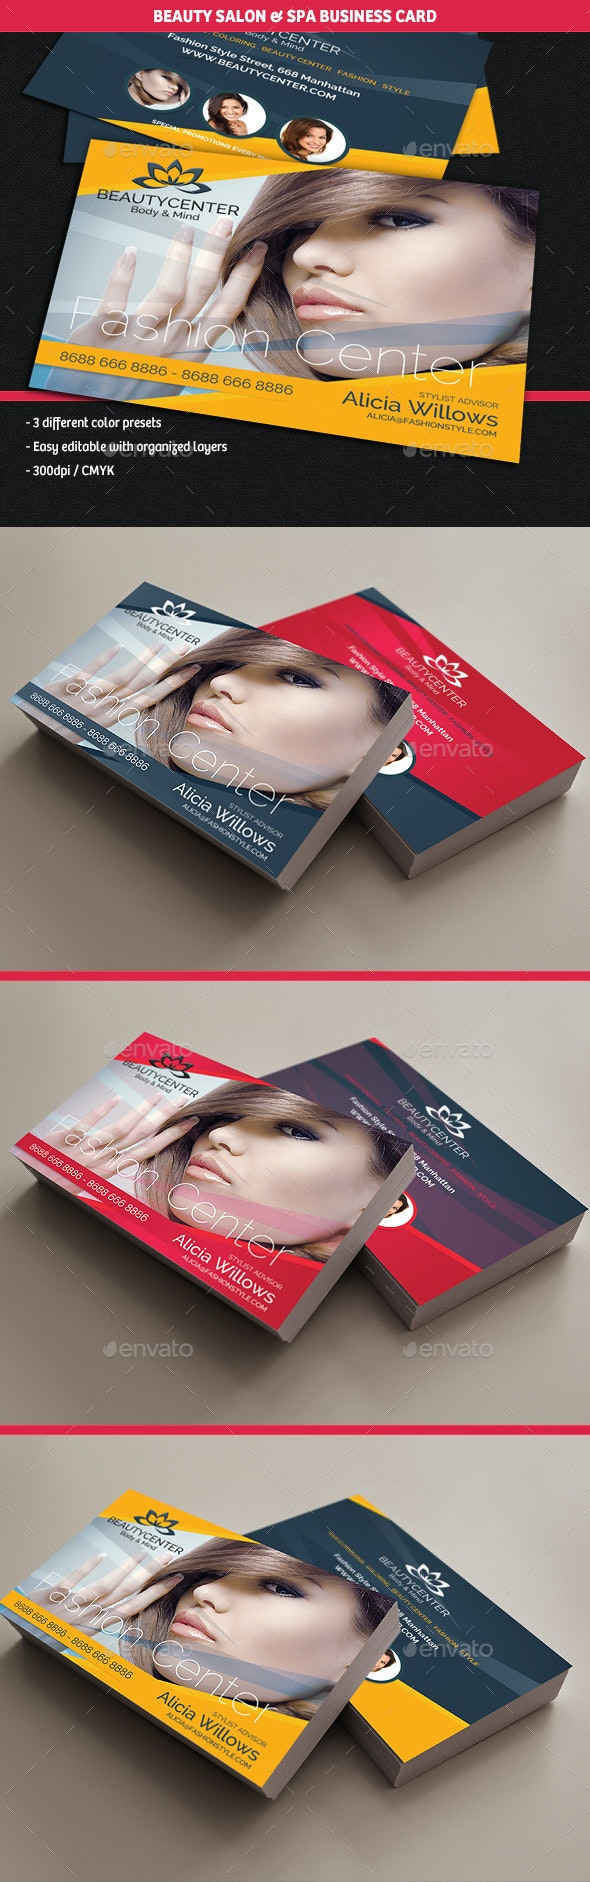 Beauty Center & Spa Business Cards - Business Cards Print Templates